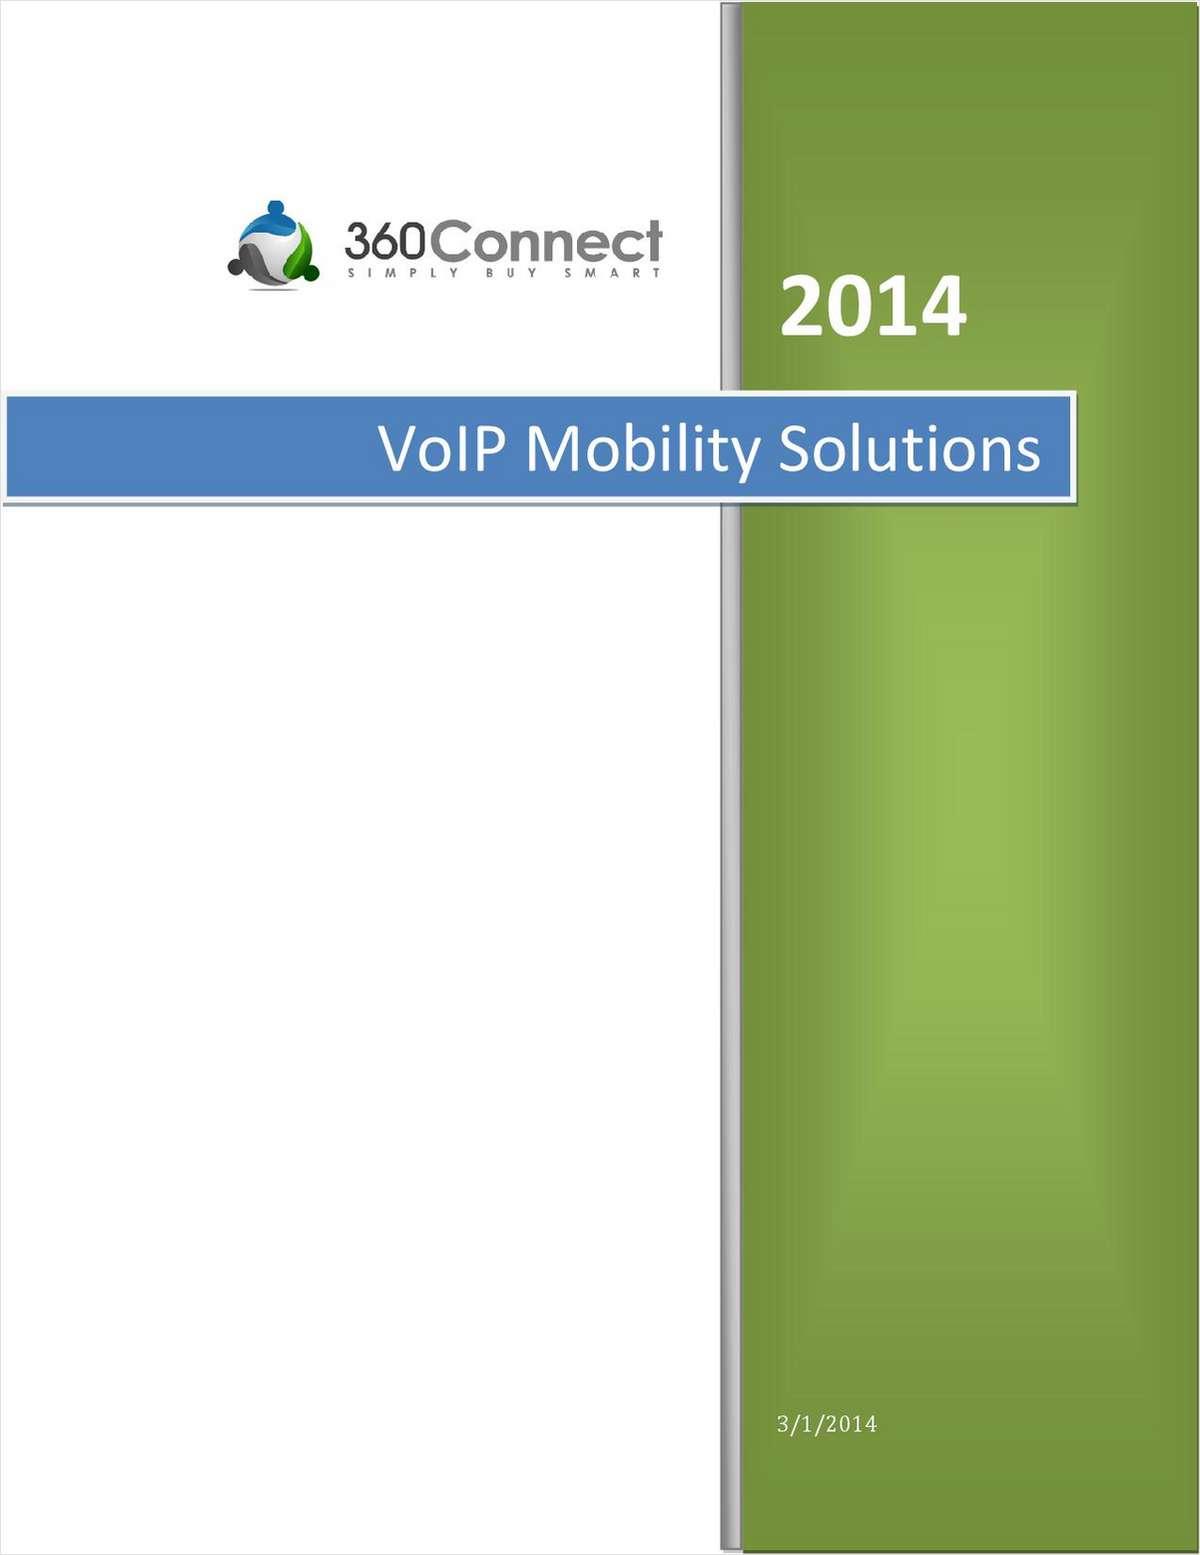 VOIP Mobility Solutions